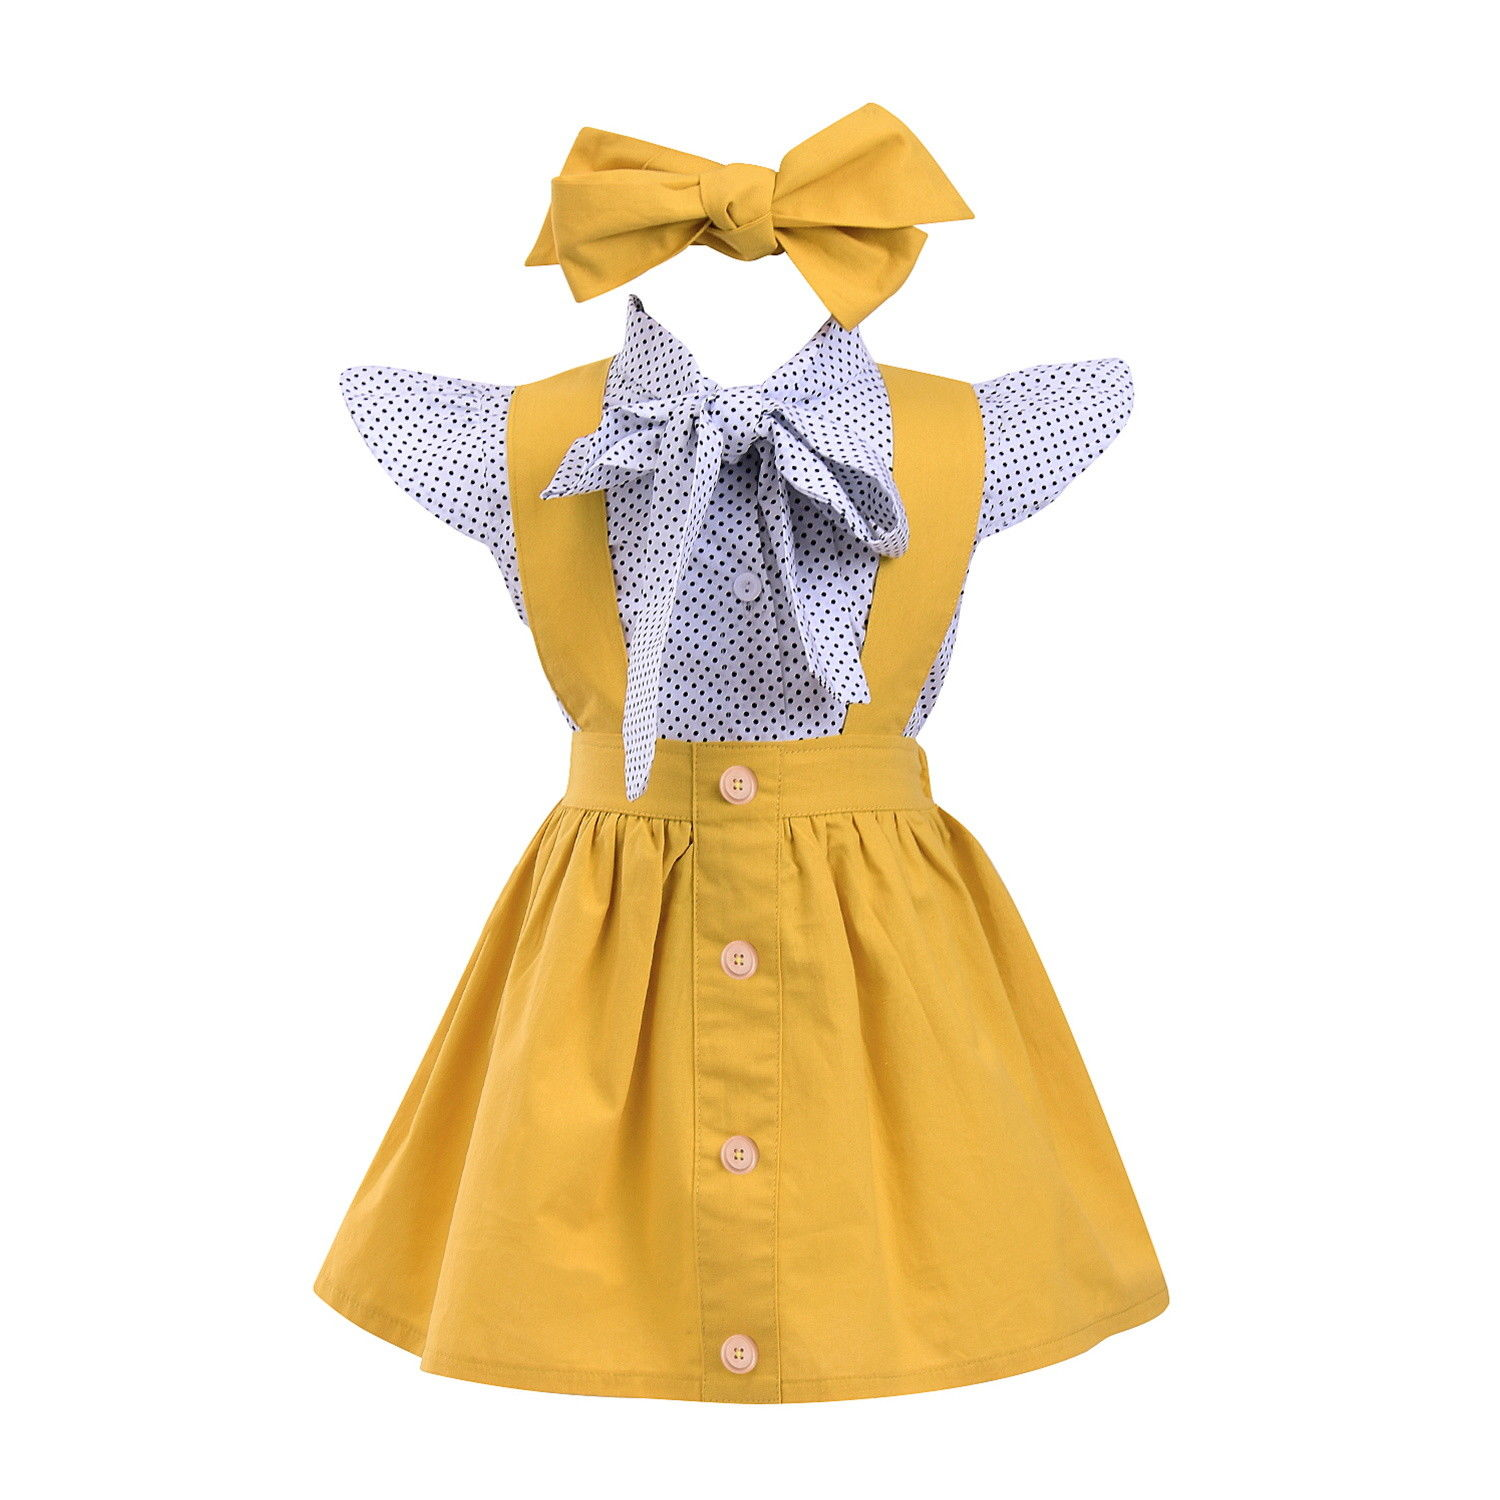 Cute Style Baby Kids Girls Short Wave Point Sleeve Tops+Suspender Strap Skirt Bow Headband 3PCS Summer